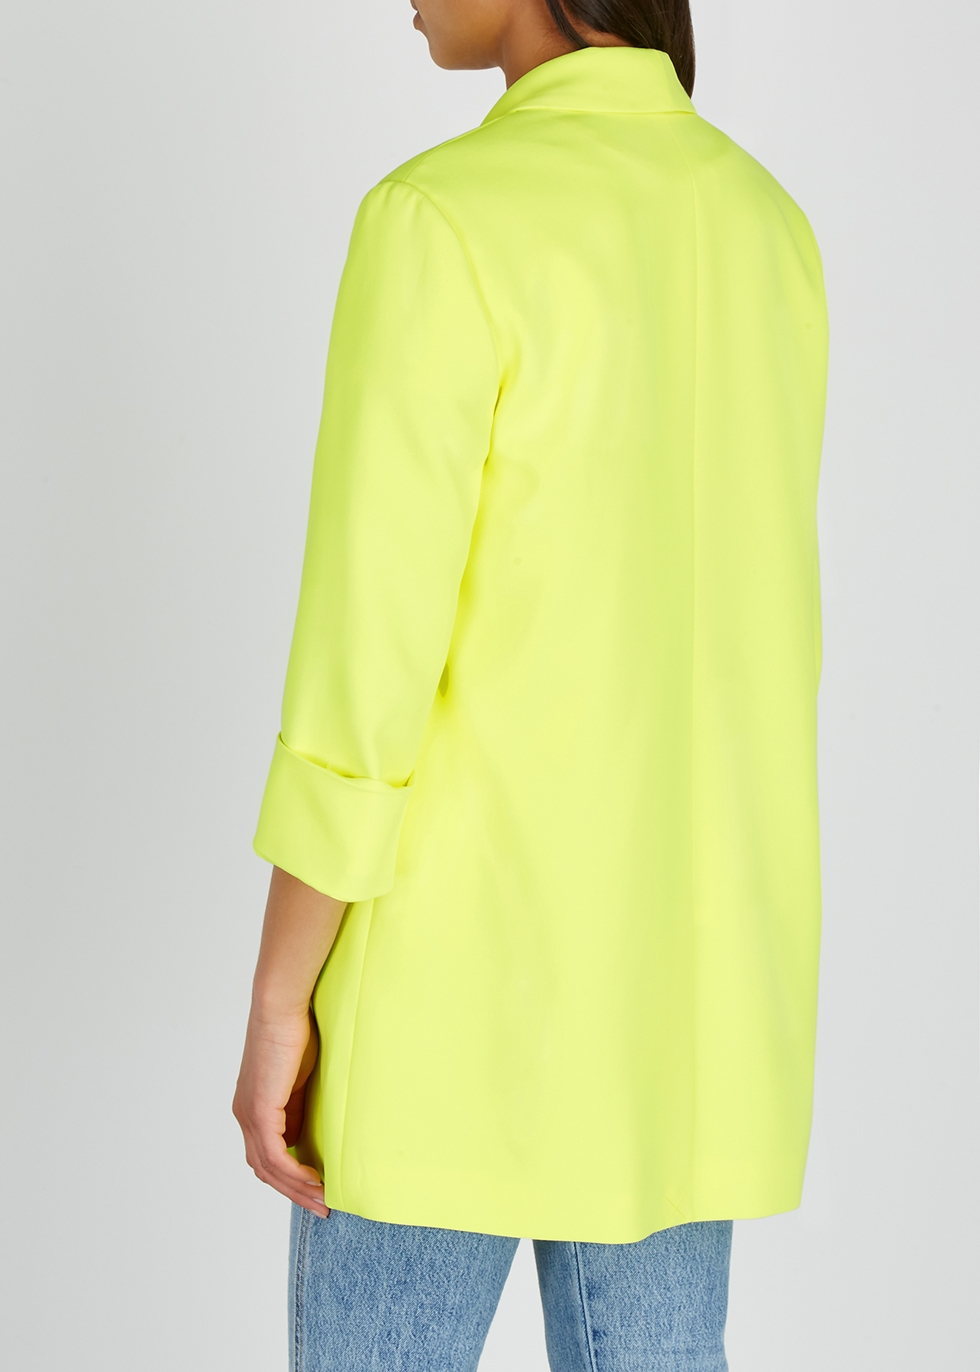 Angela neon yellow blazer - Alice + Olivia